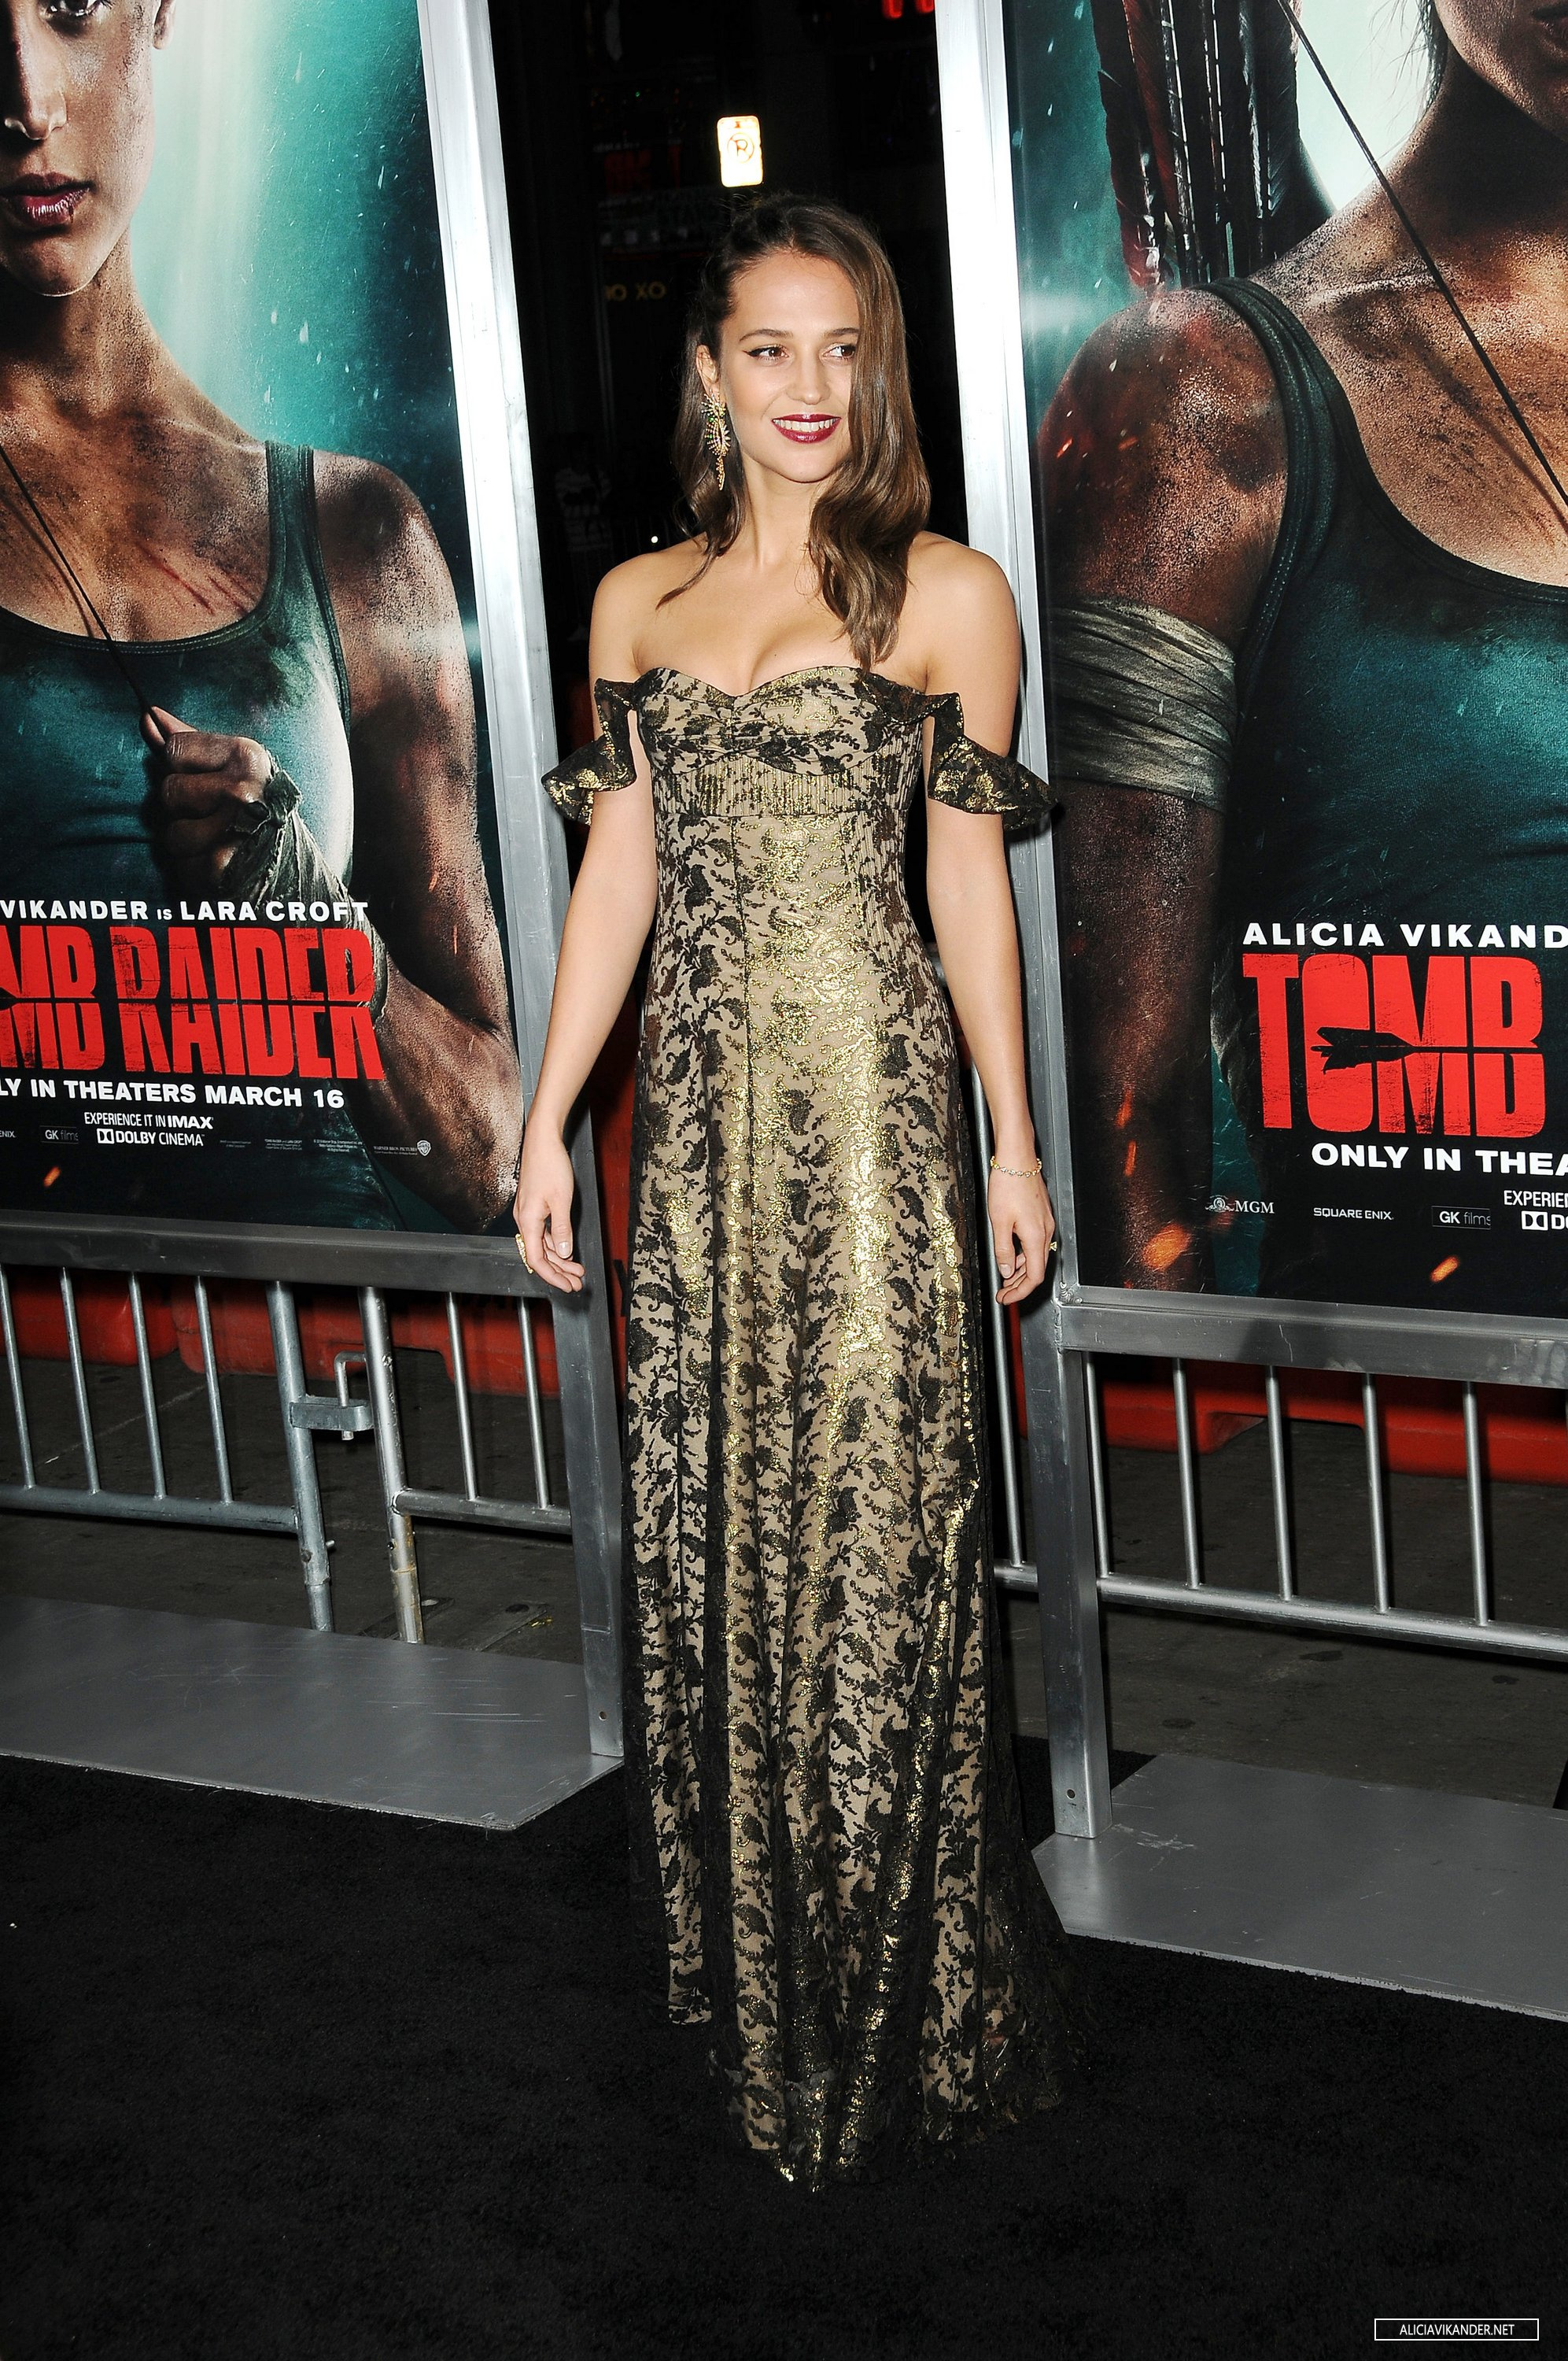 Alicia Vikander at Tomb Raider premiere in dress